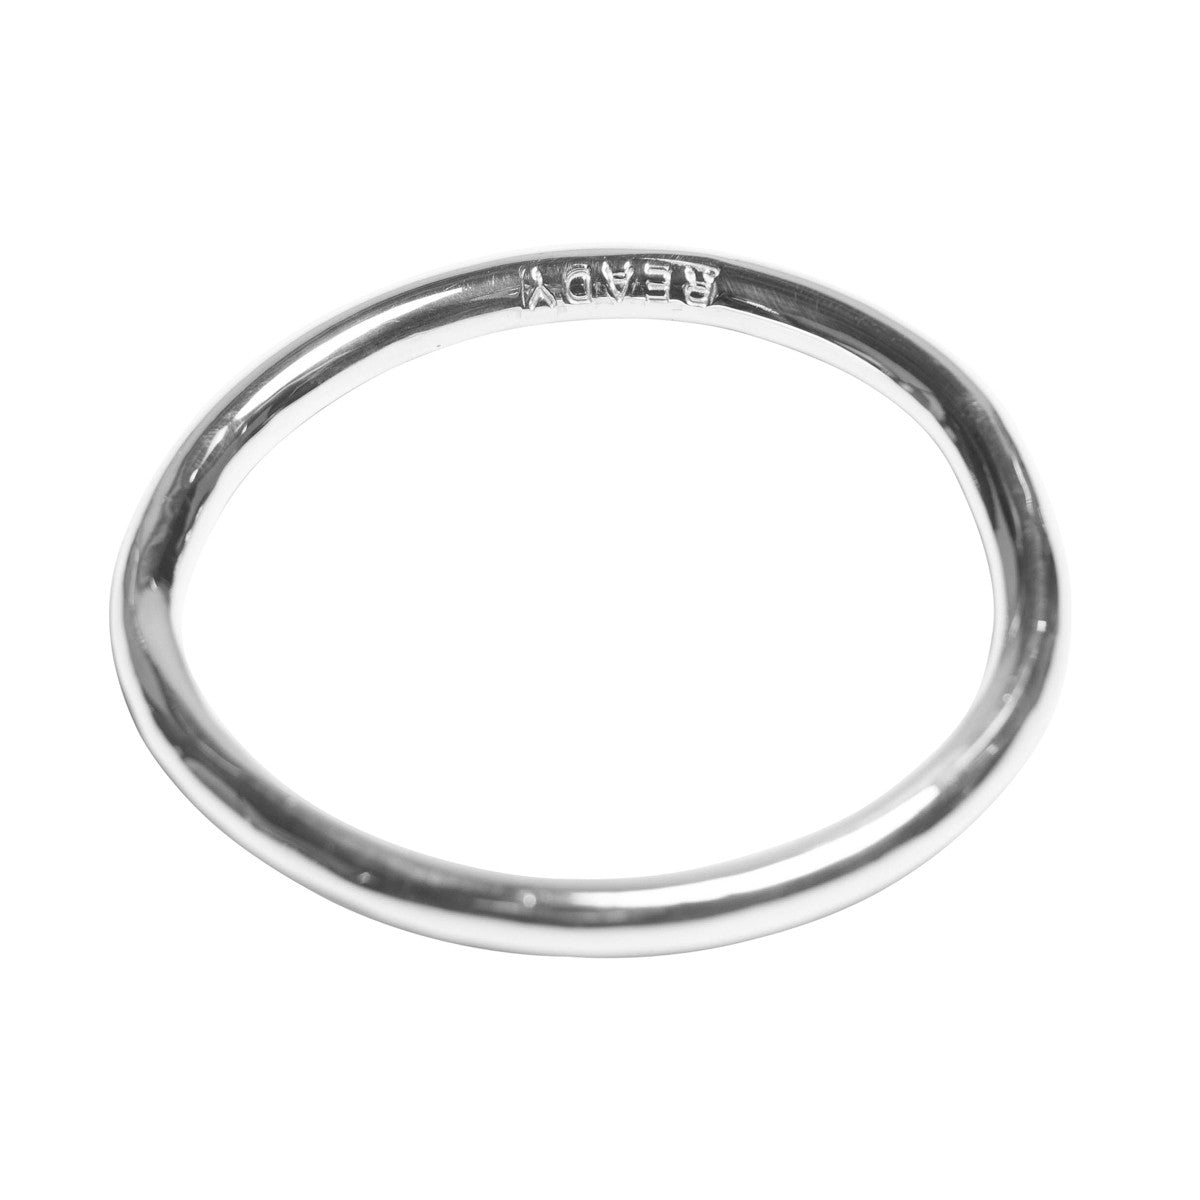 Medium Round Profile Bangle